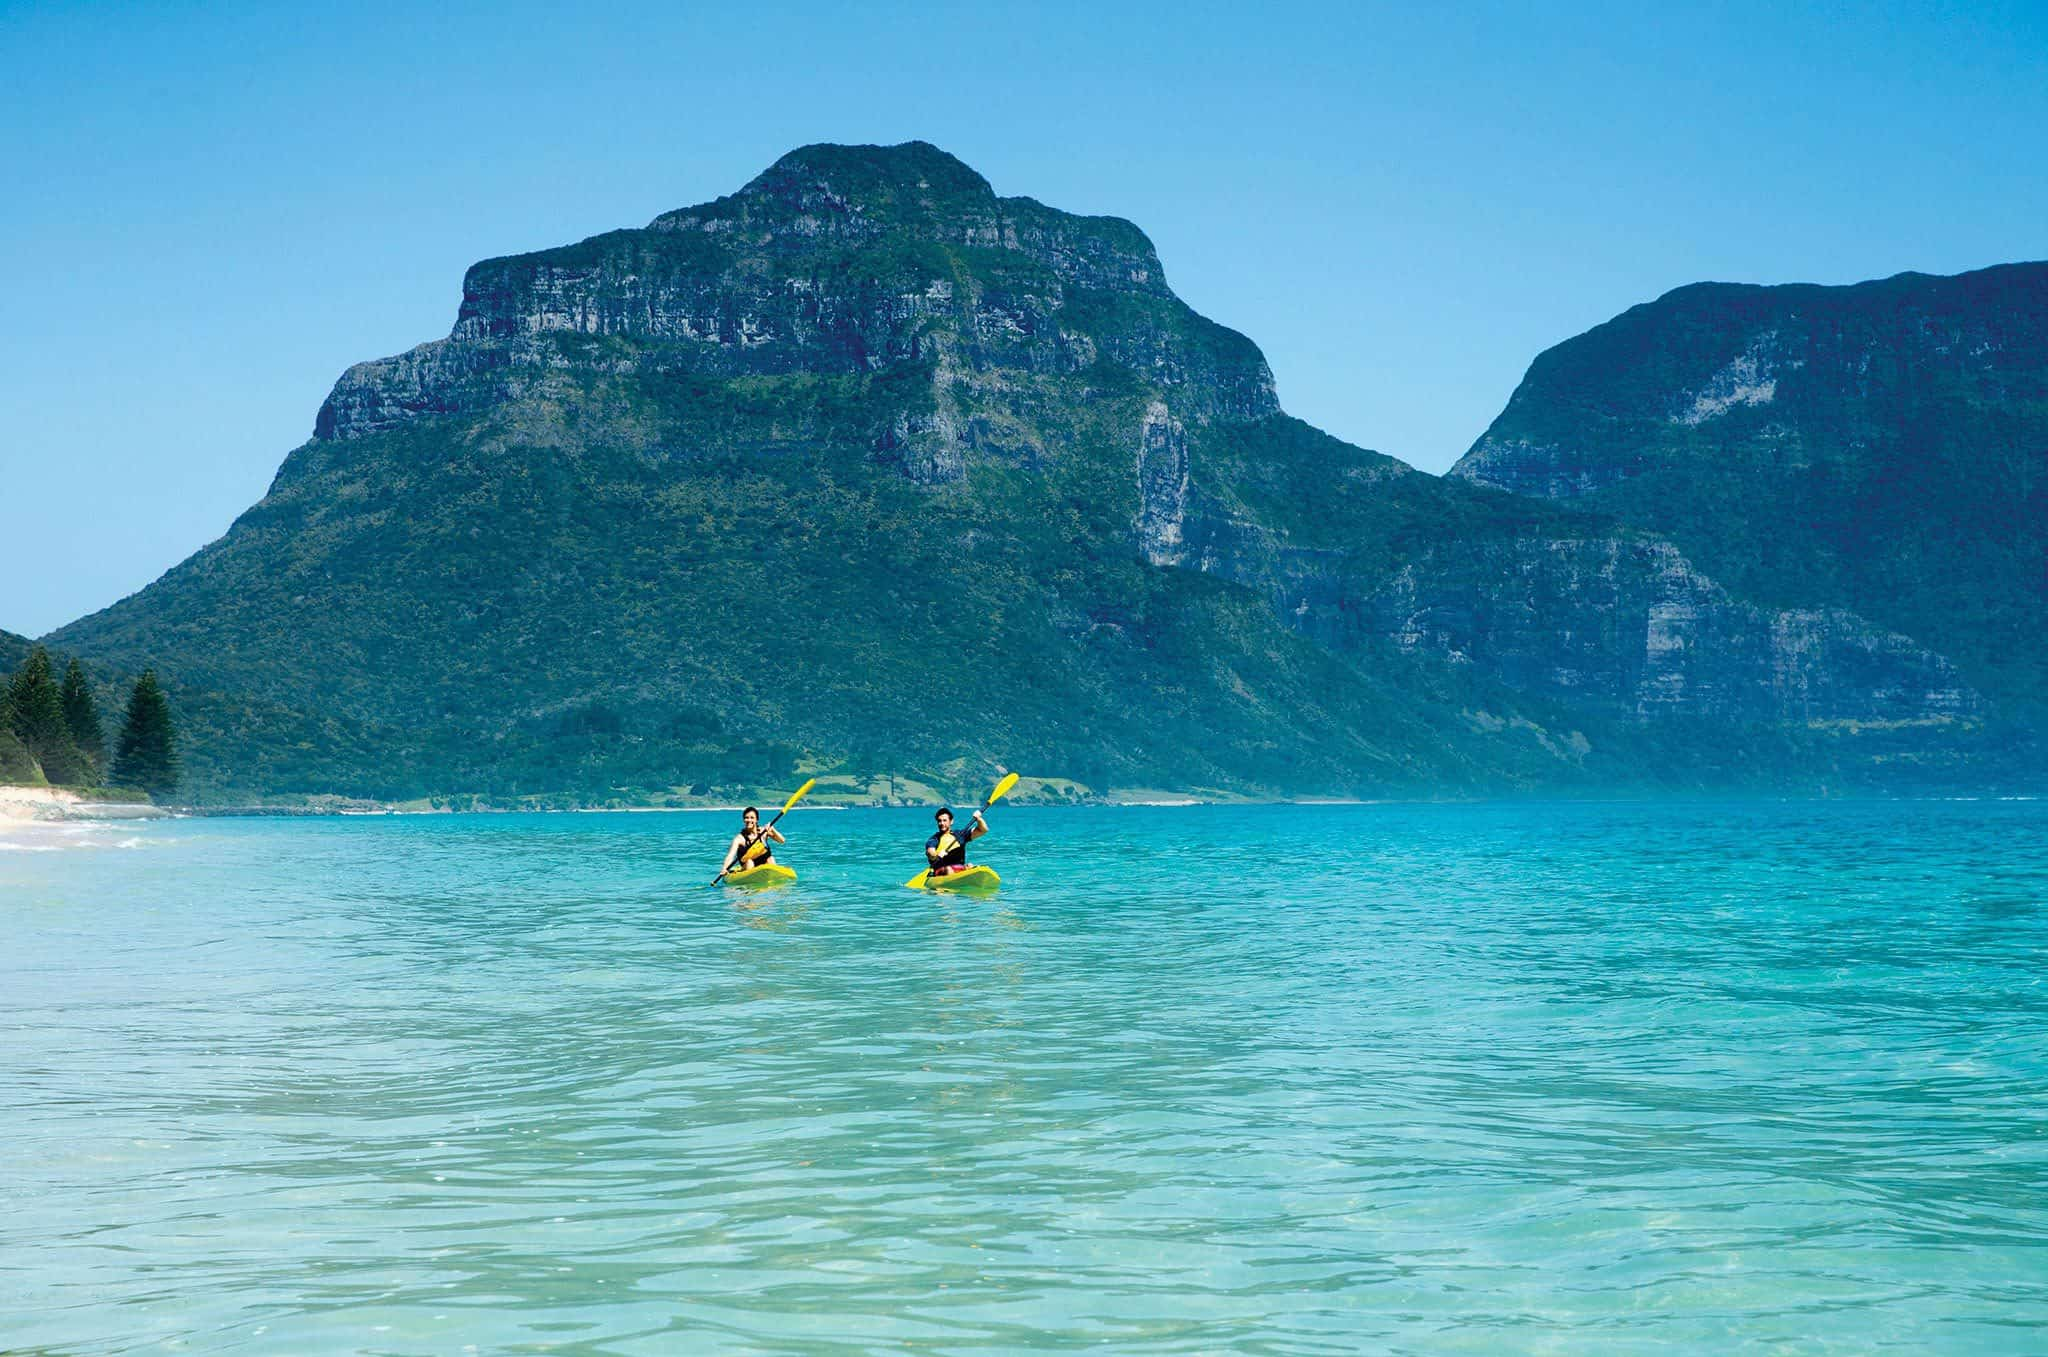 49892 56 Destination NSW Lord Howe Island